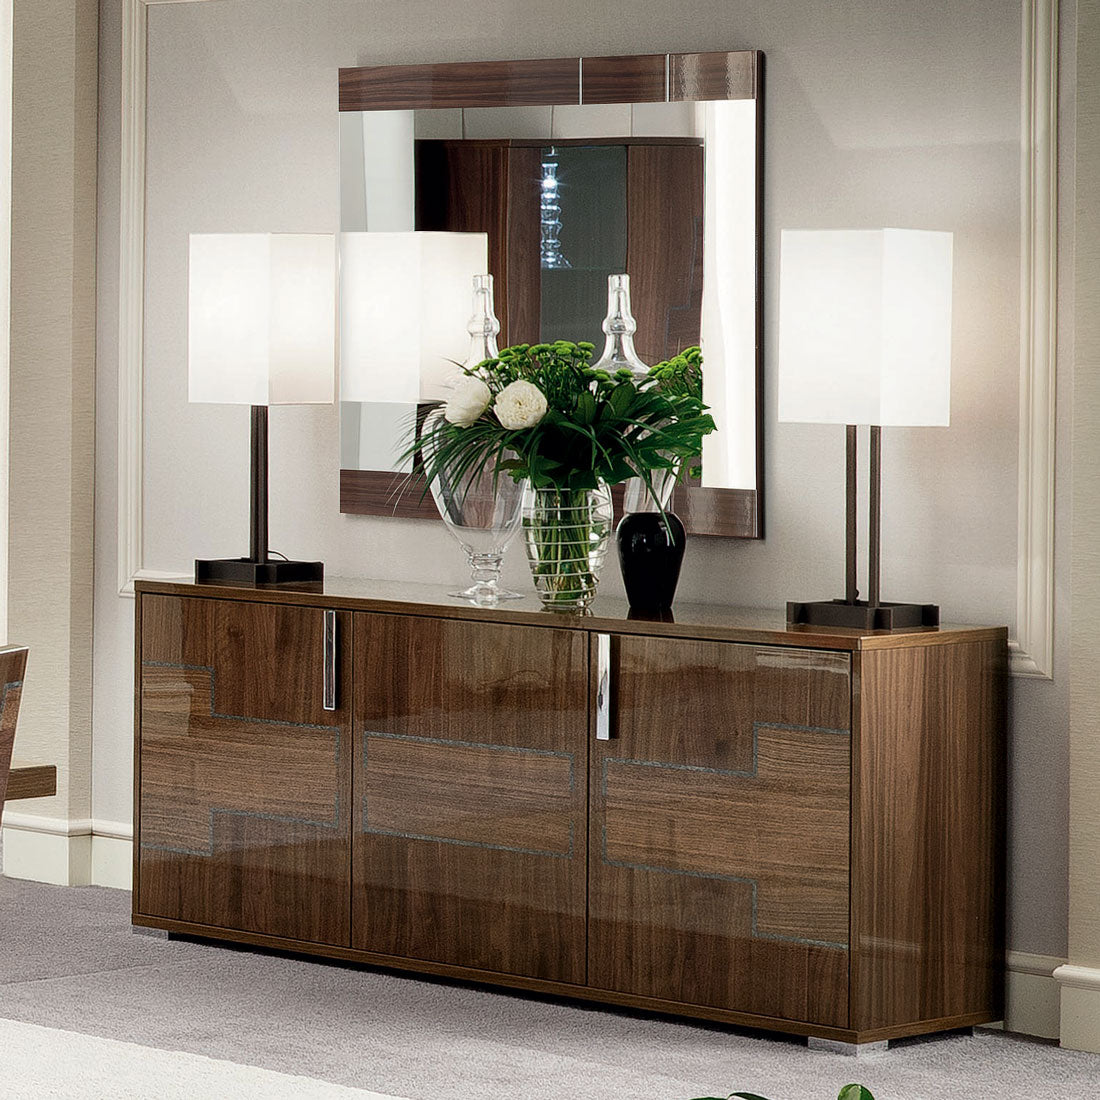 ALF Memphis Dining Room Collection - Isingtec